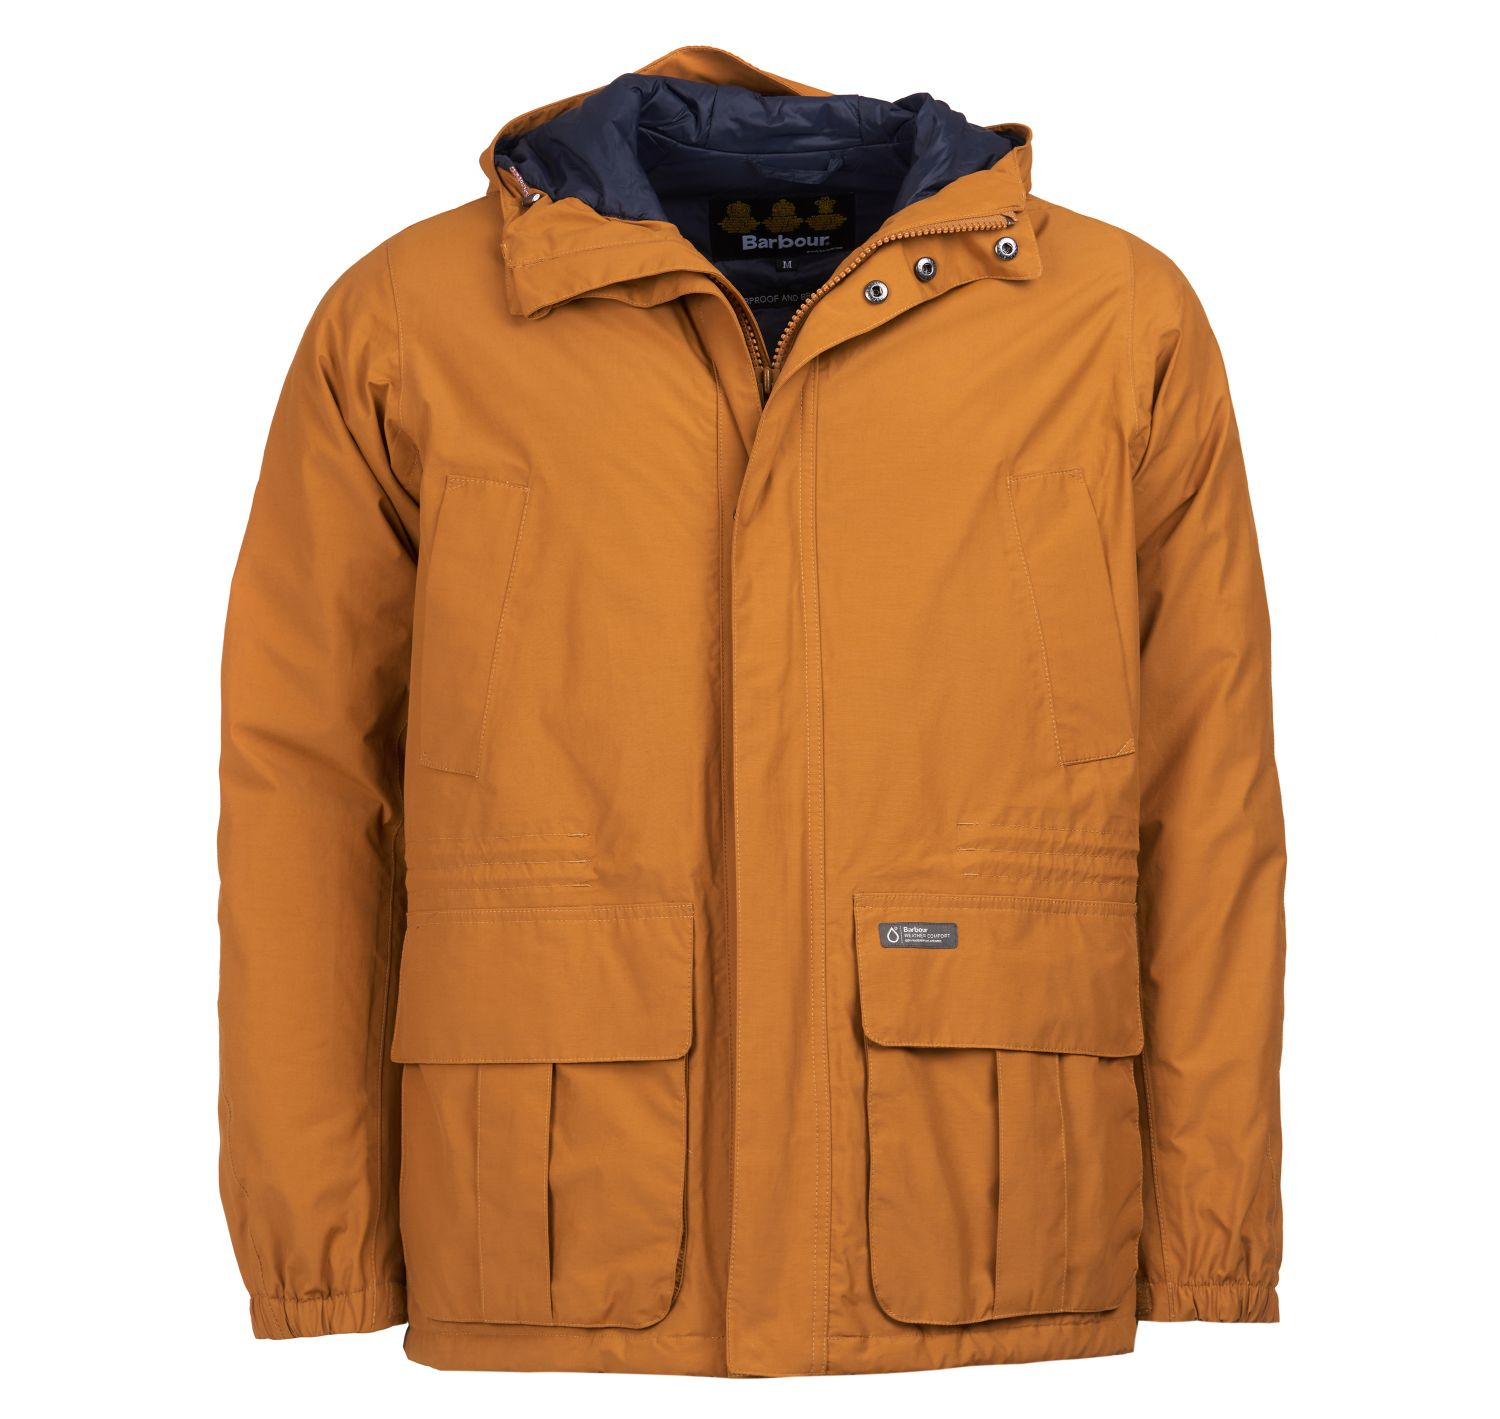 Barbour Ashton Waterproof Breathable Jacket Yellow FIT: Tailored